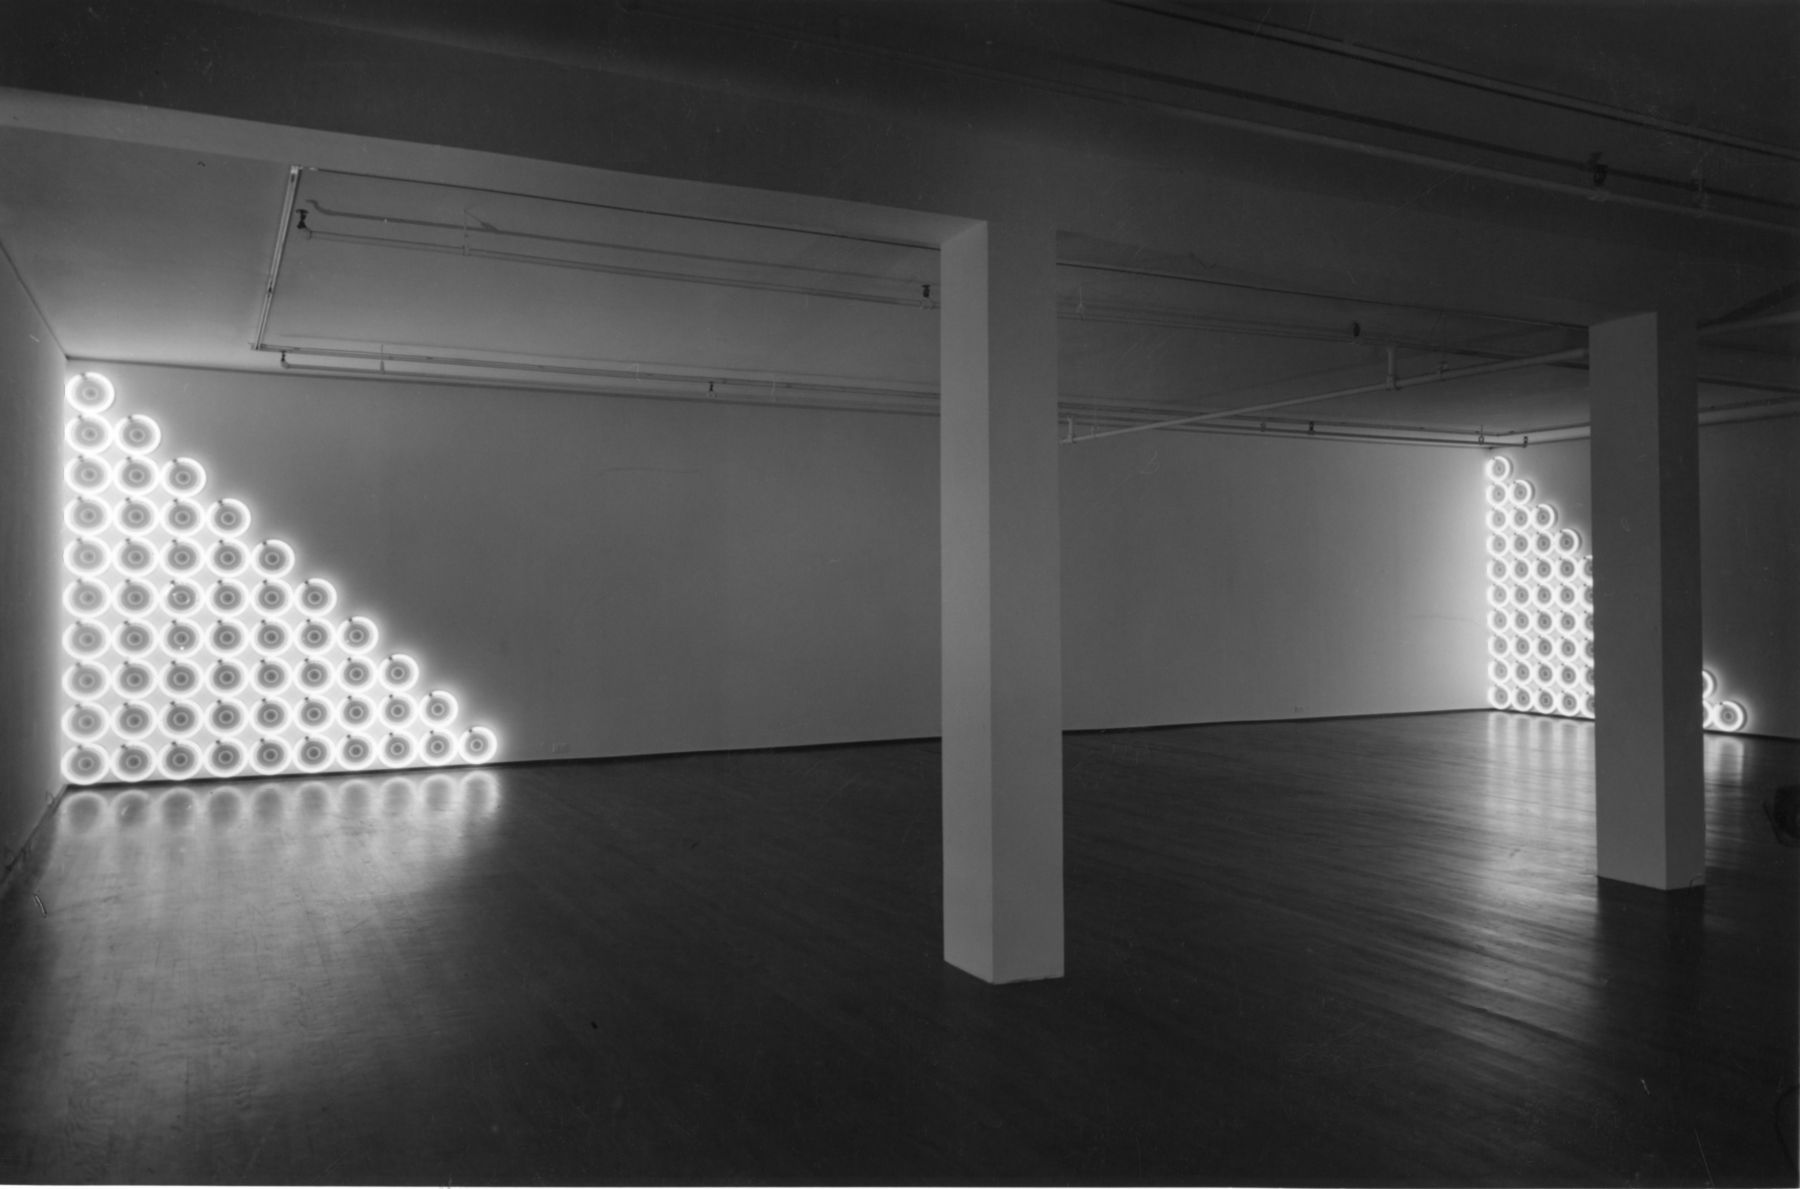 Installation view, Dan Flavin, 420 WEST BROADWAY